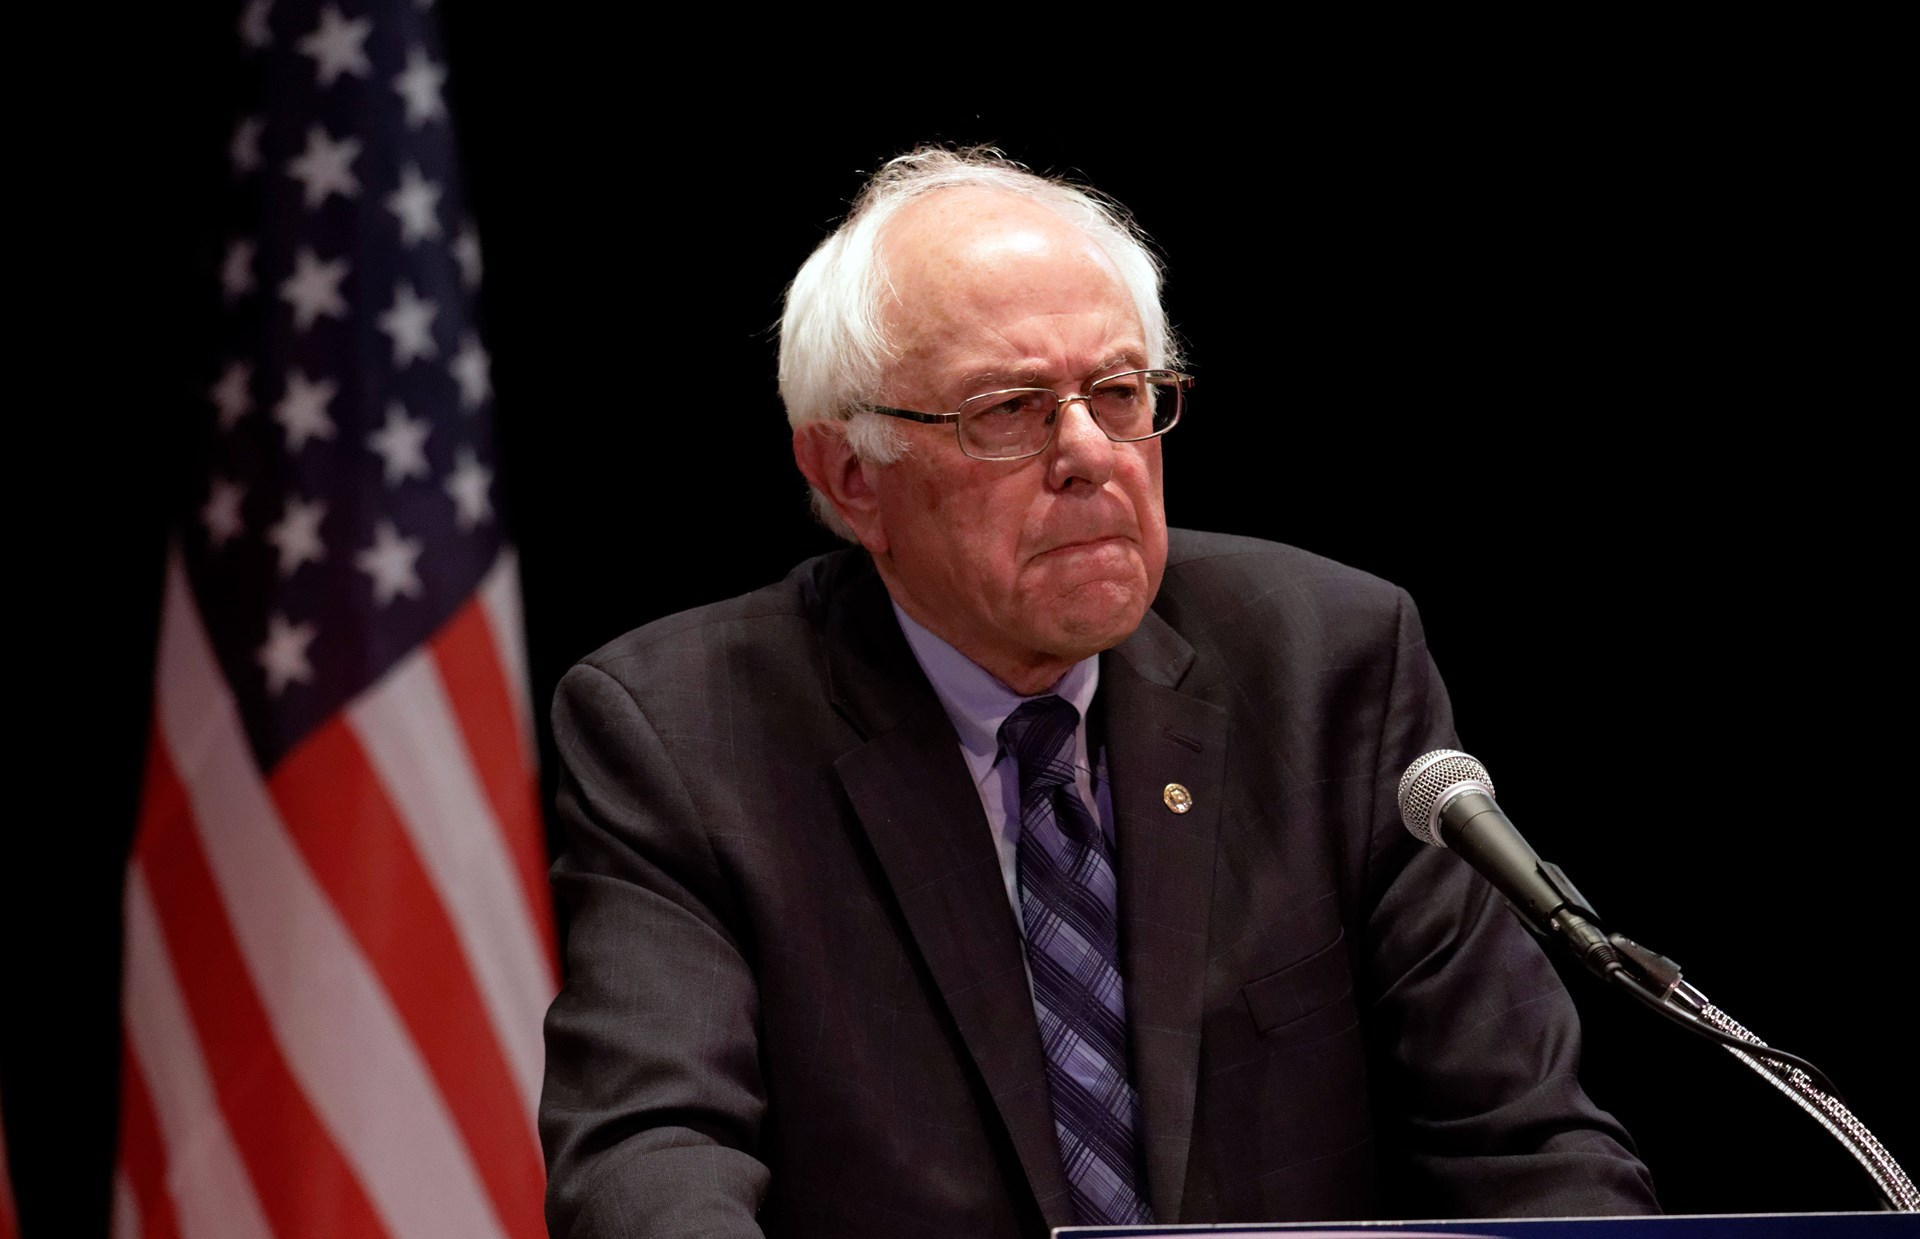 berniesandersfrowning.jpg?center=0.41085